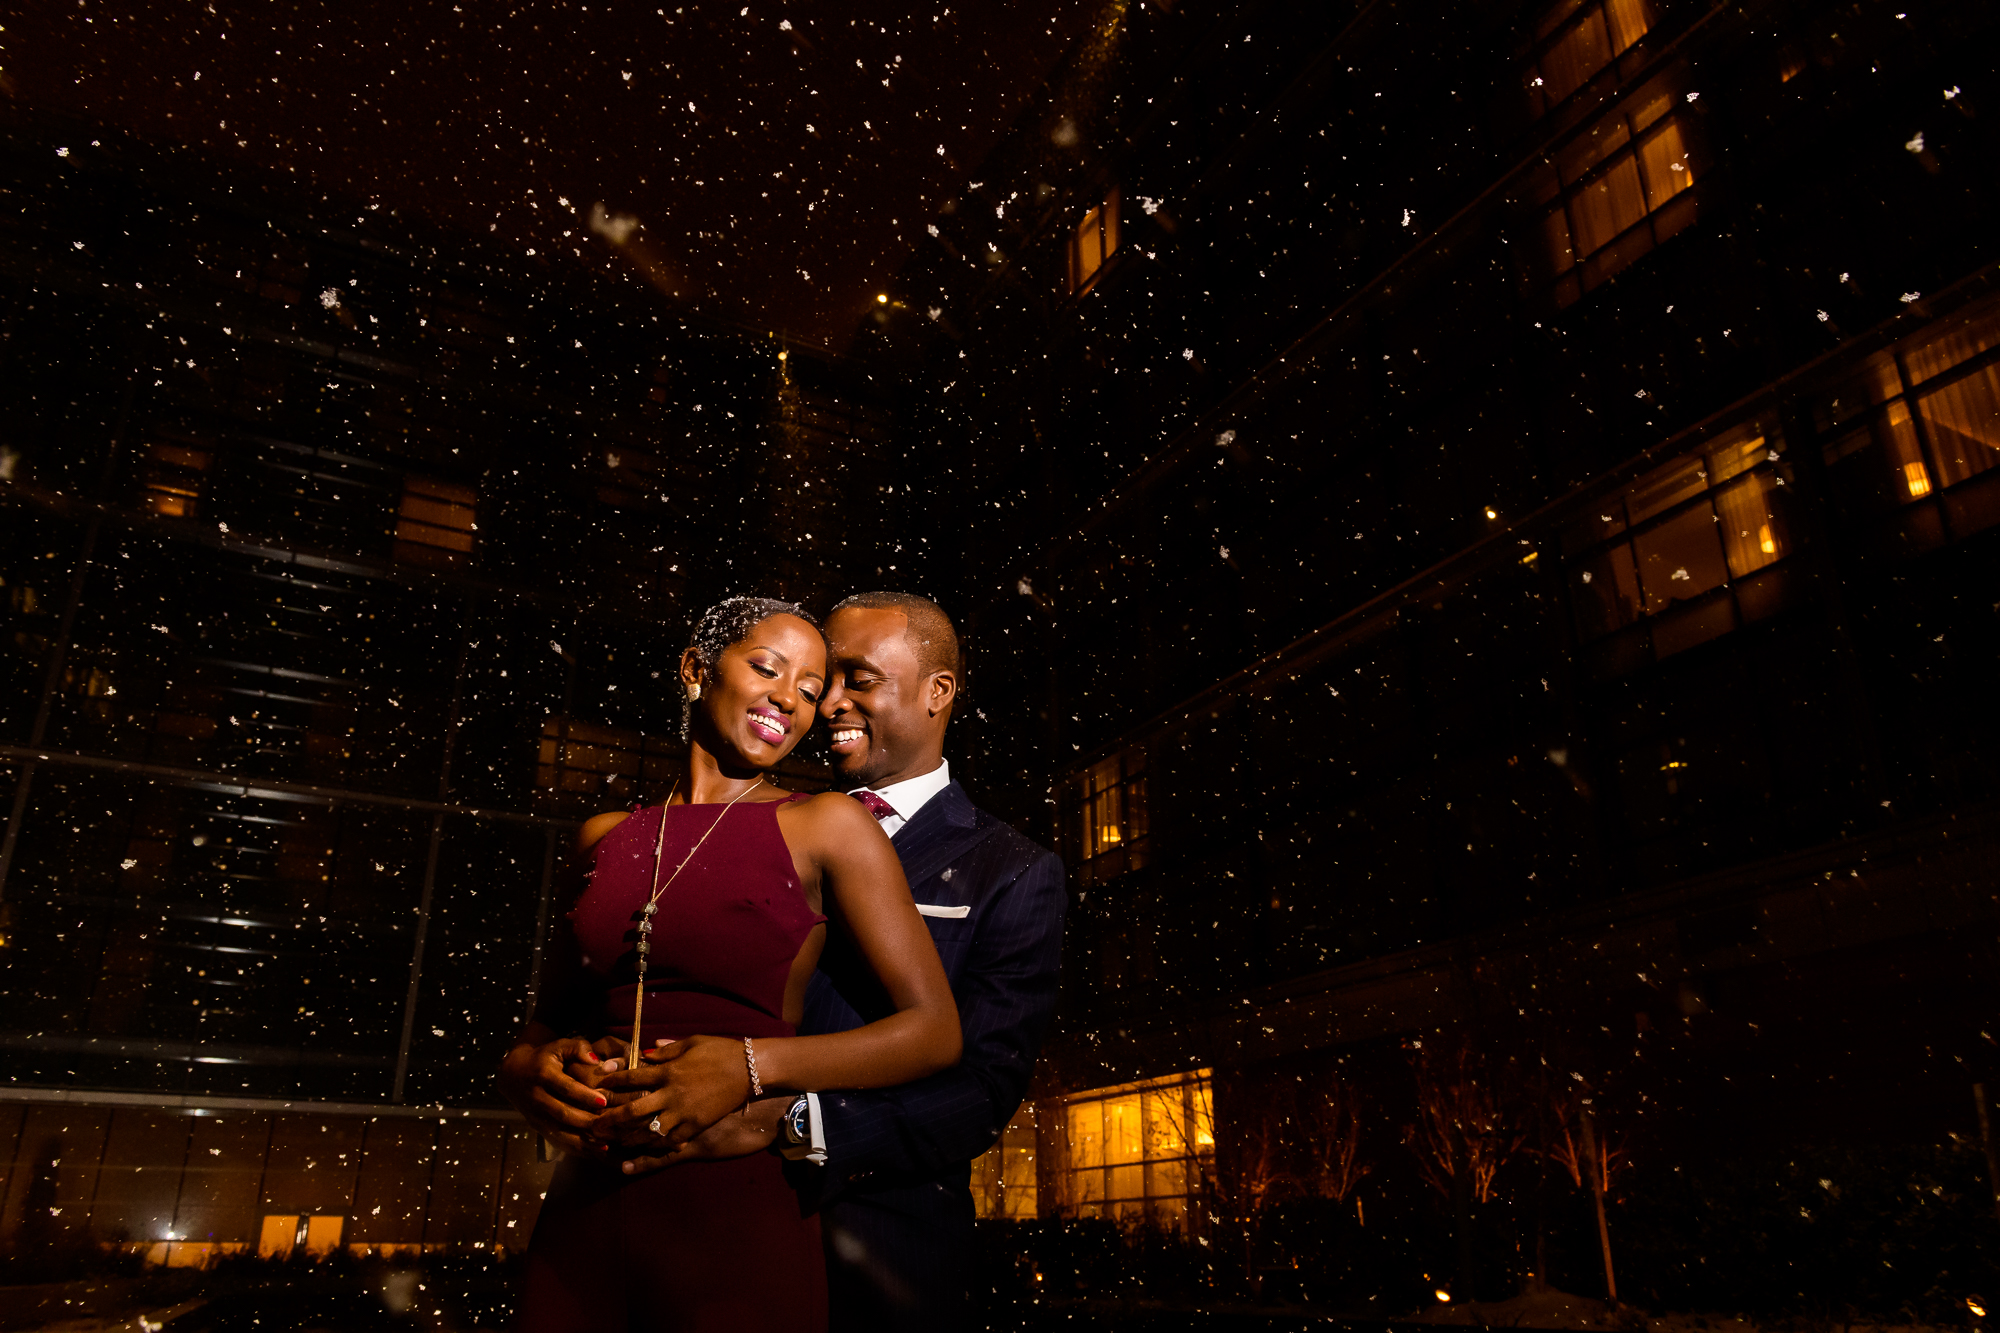 Engagement couple embrace in falling snow - photo by Christopher Jason Studios